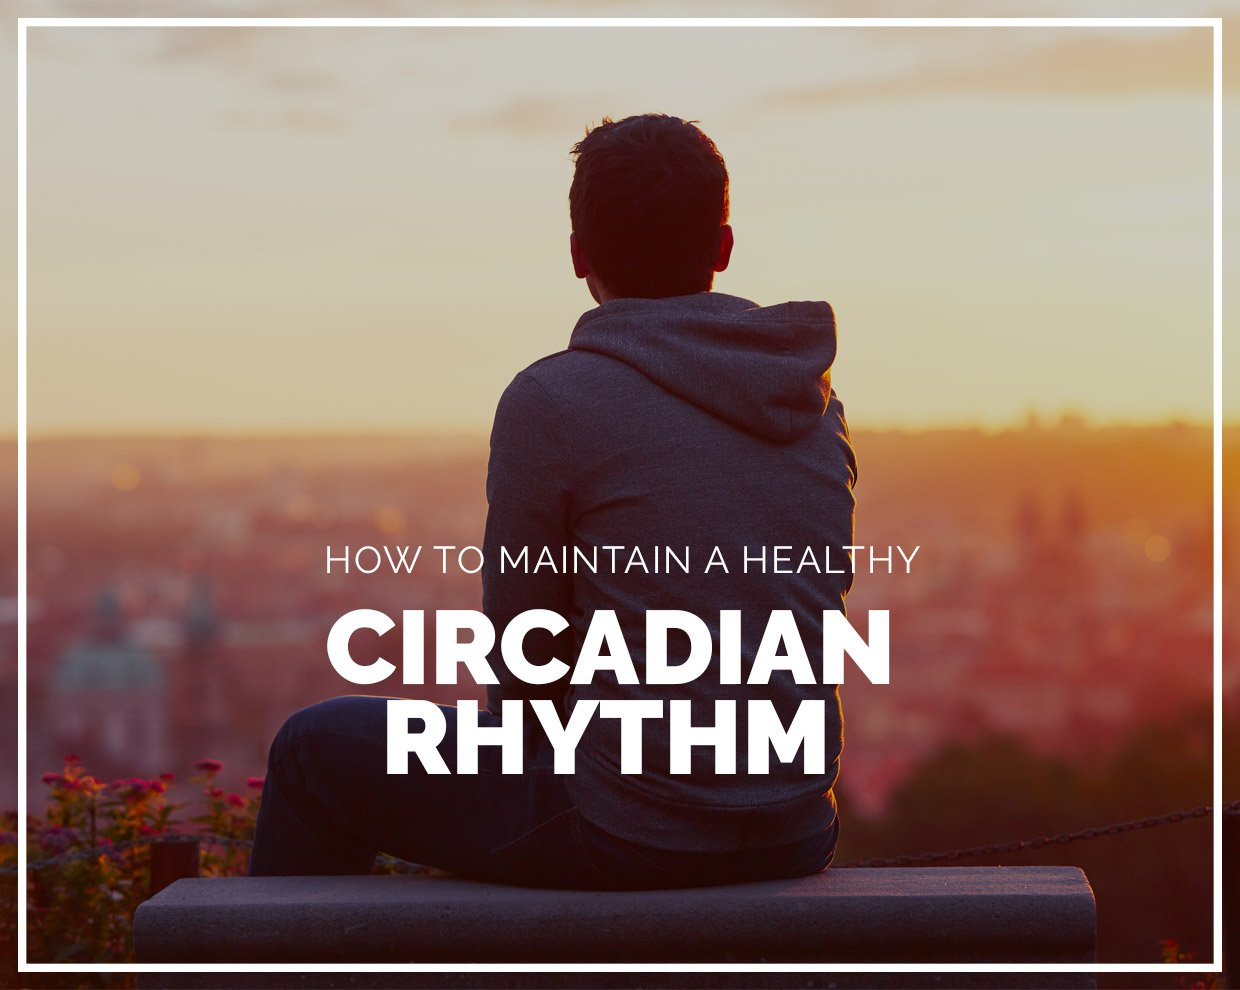 How to maintain a healthy circadian rhythm